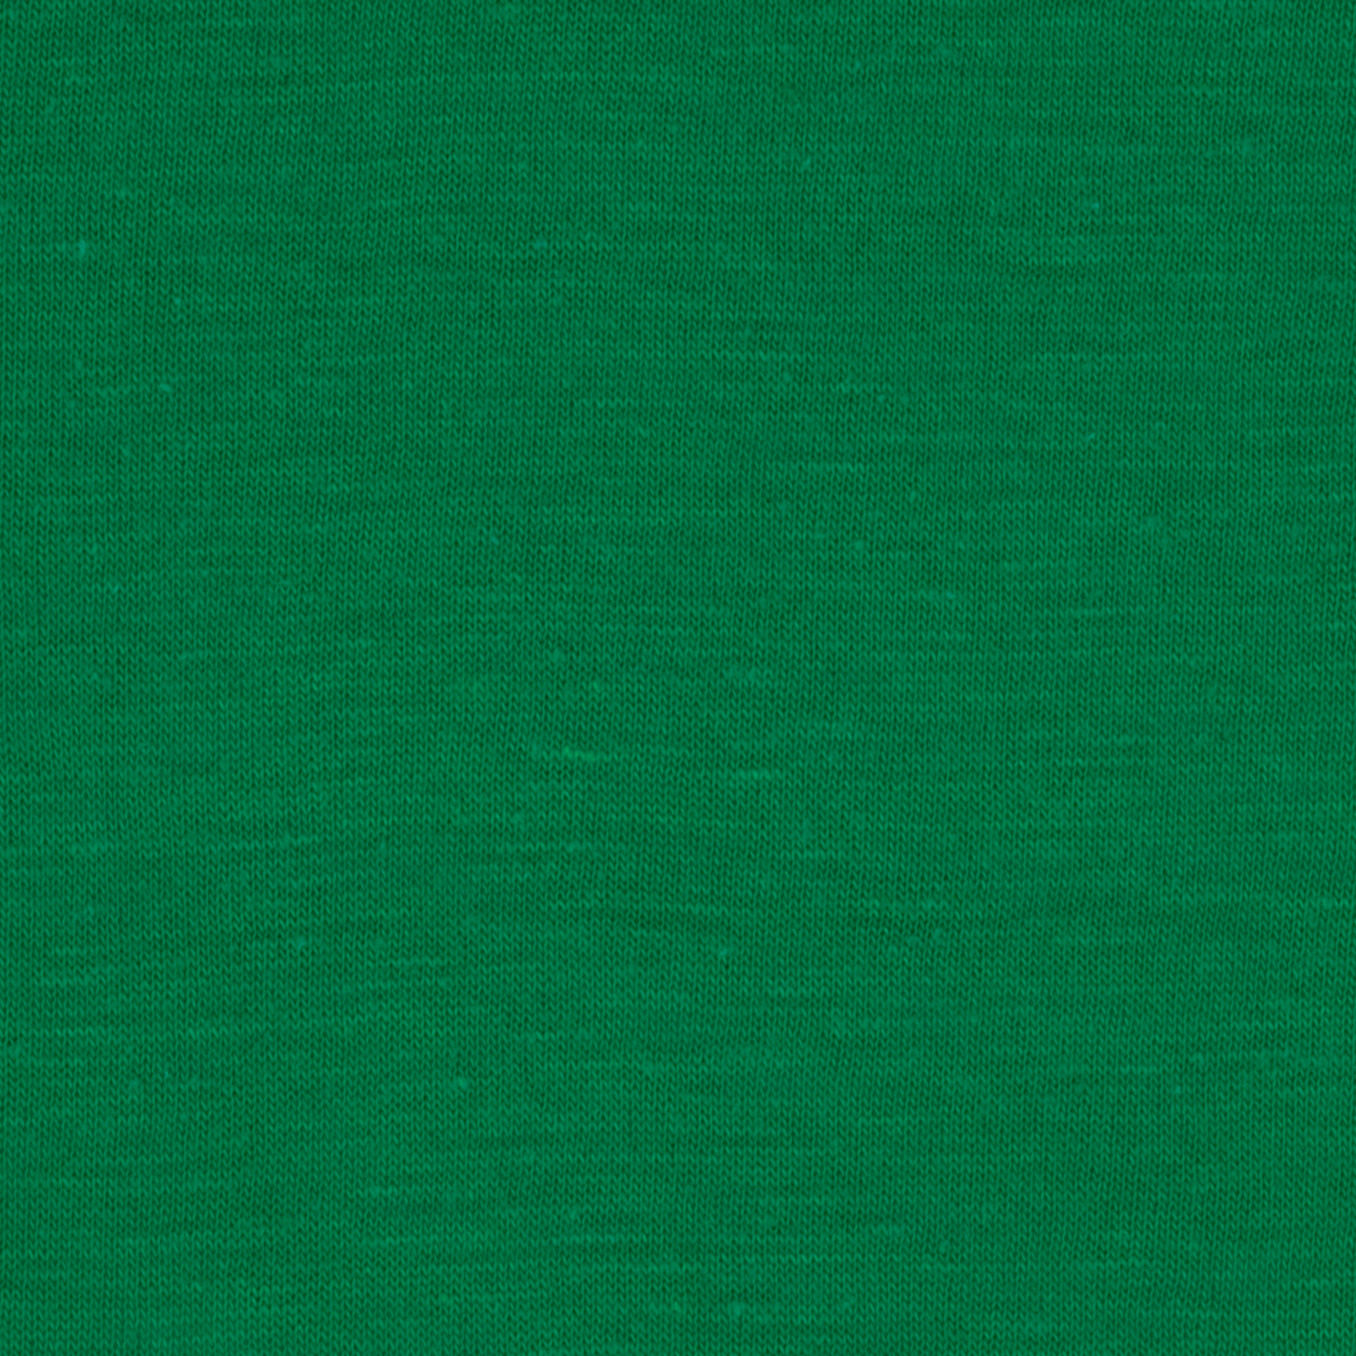 Cotton Blend Slub Jersey Knit Green Fabric